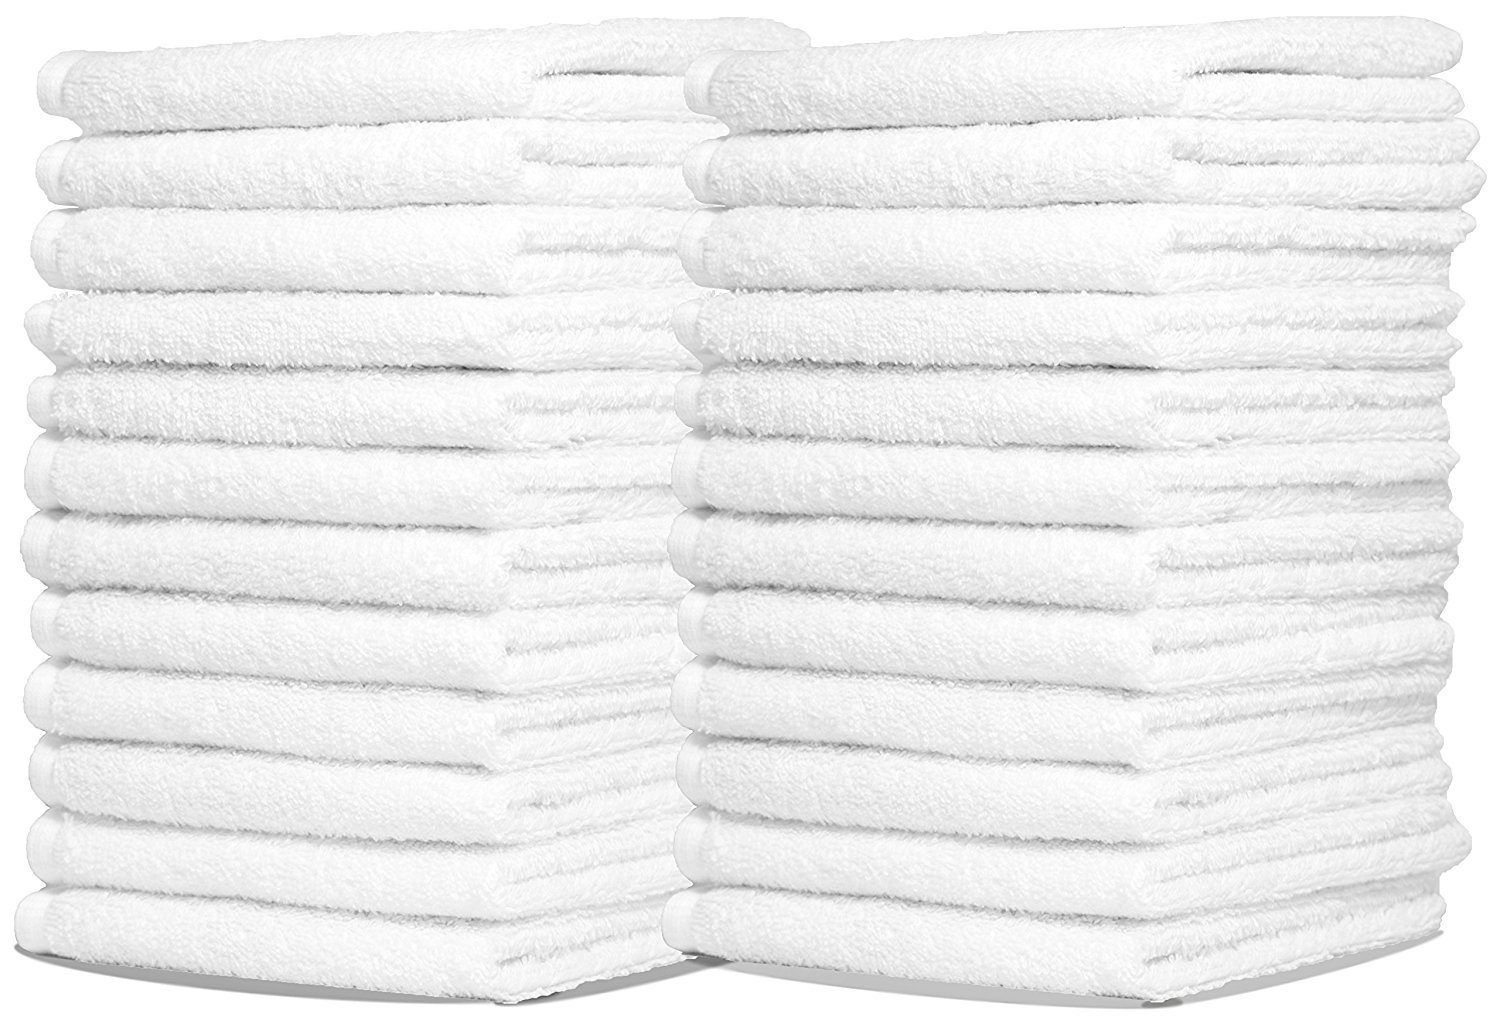 """Simpli-Magic 78992-60PK White (Size:12""""x12"""") Terry Towels Cleaning Cloths. Ideal for Home, Auto, Salon, Gym, Makeup Removing & Pets, 60 Pack by Simpli-Magic (Image #3)"""